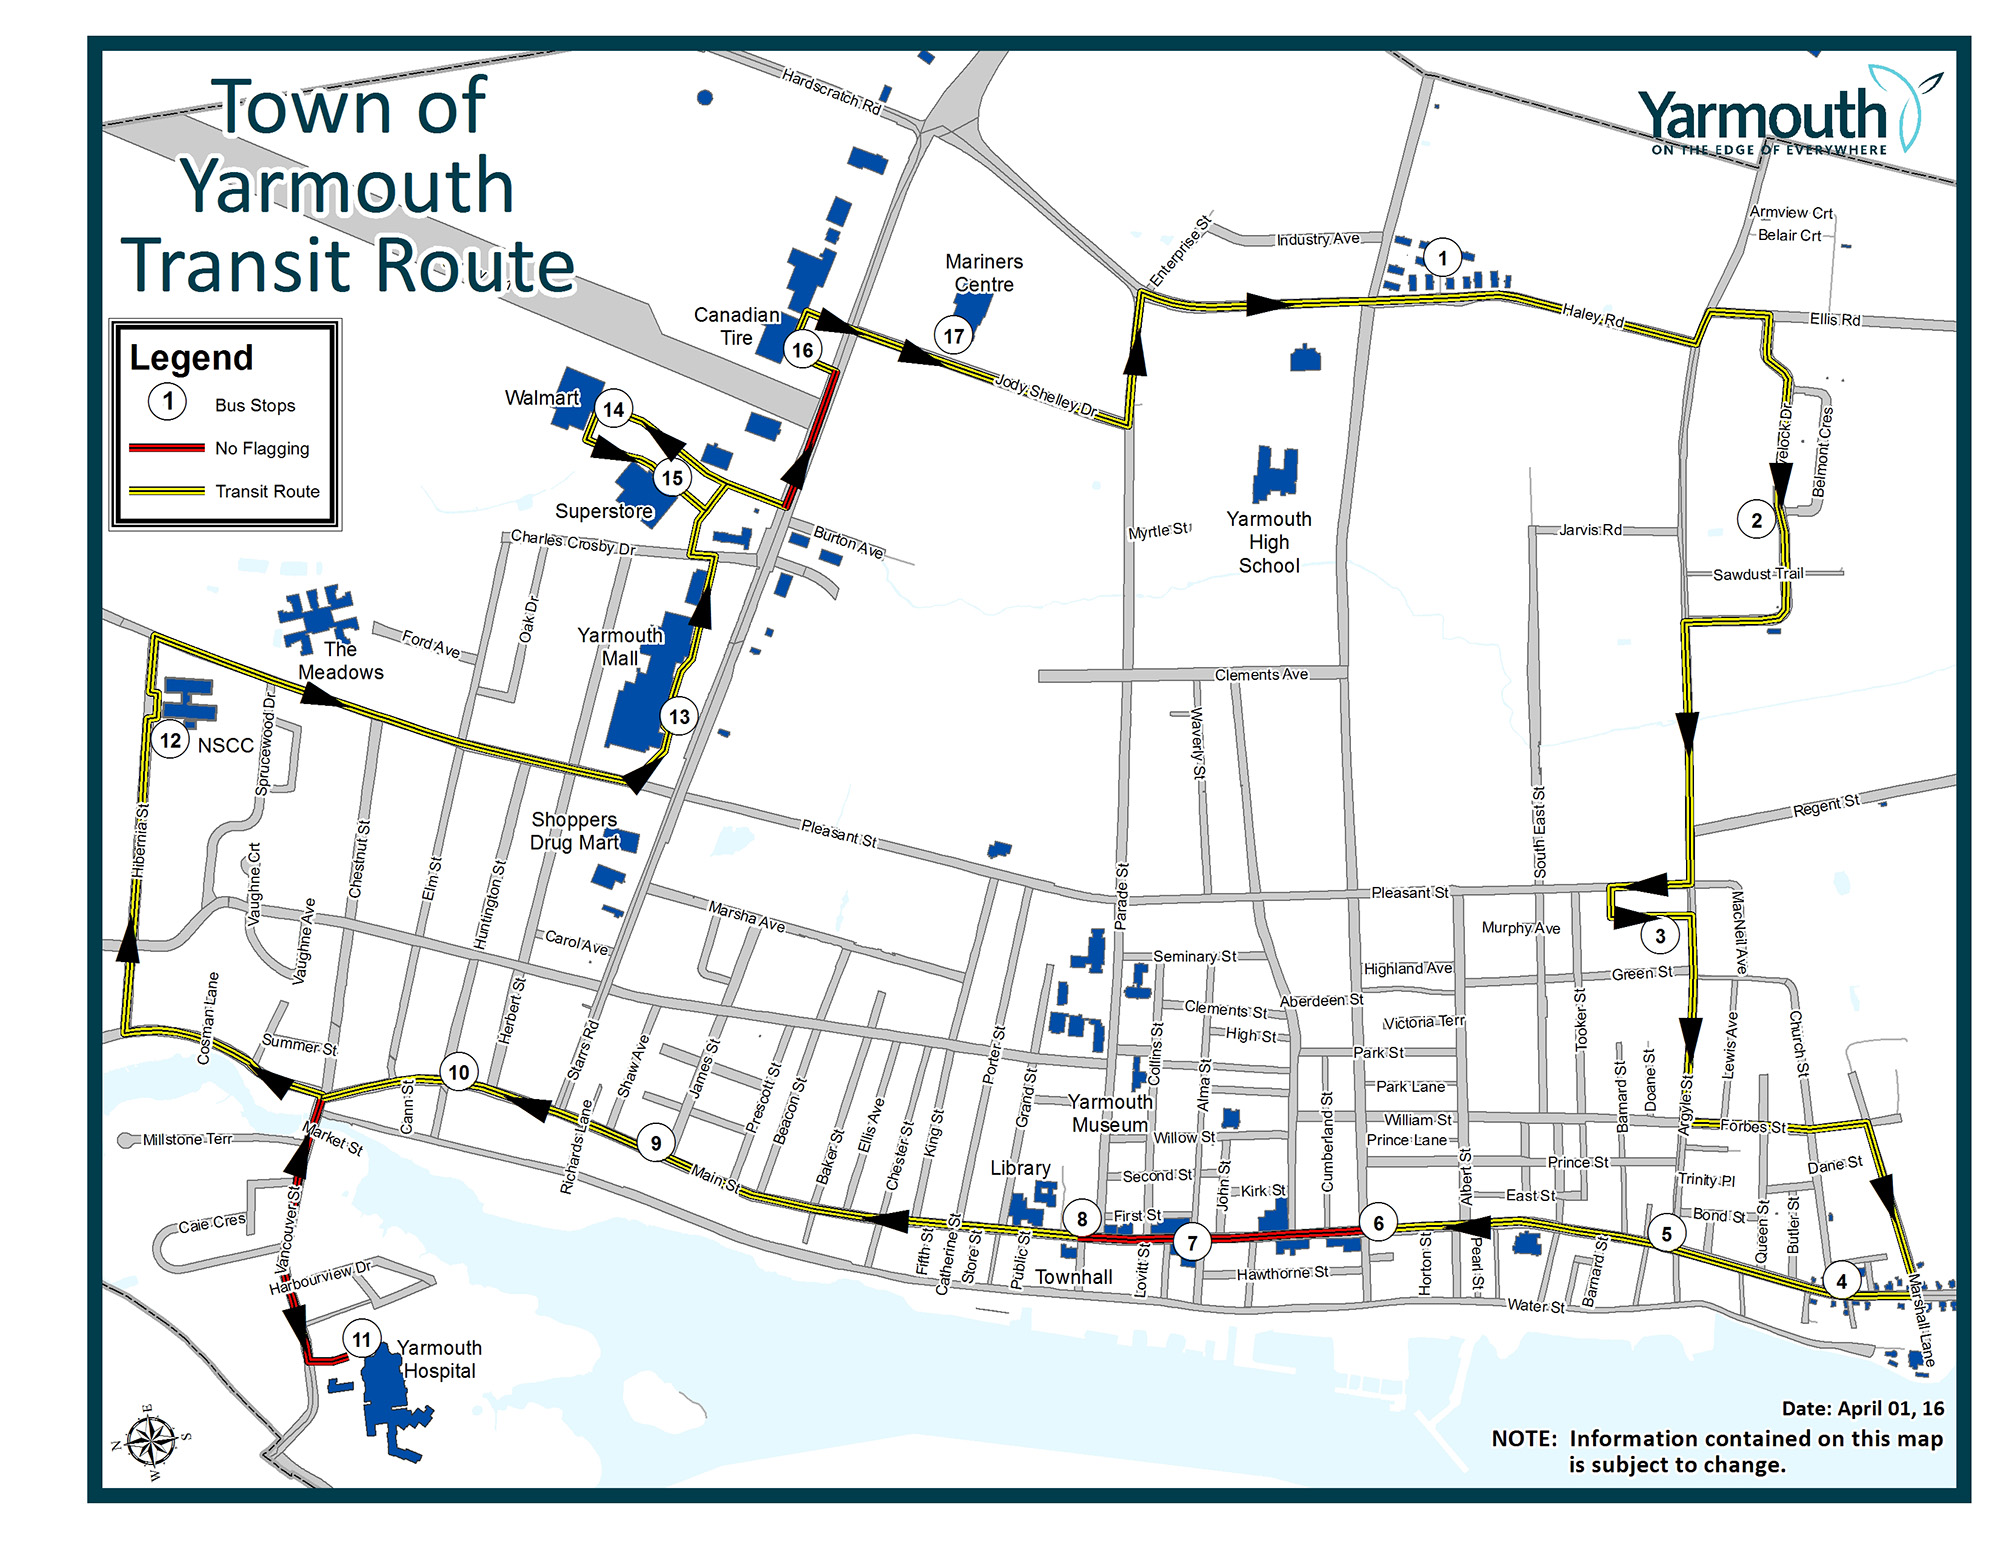 Town of Yarmouth - Town of Yarmouth